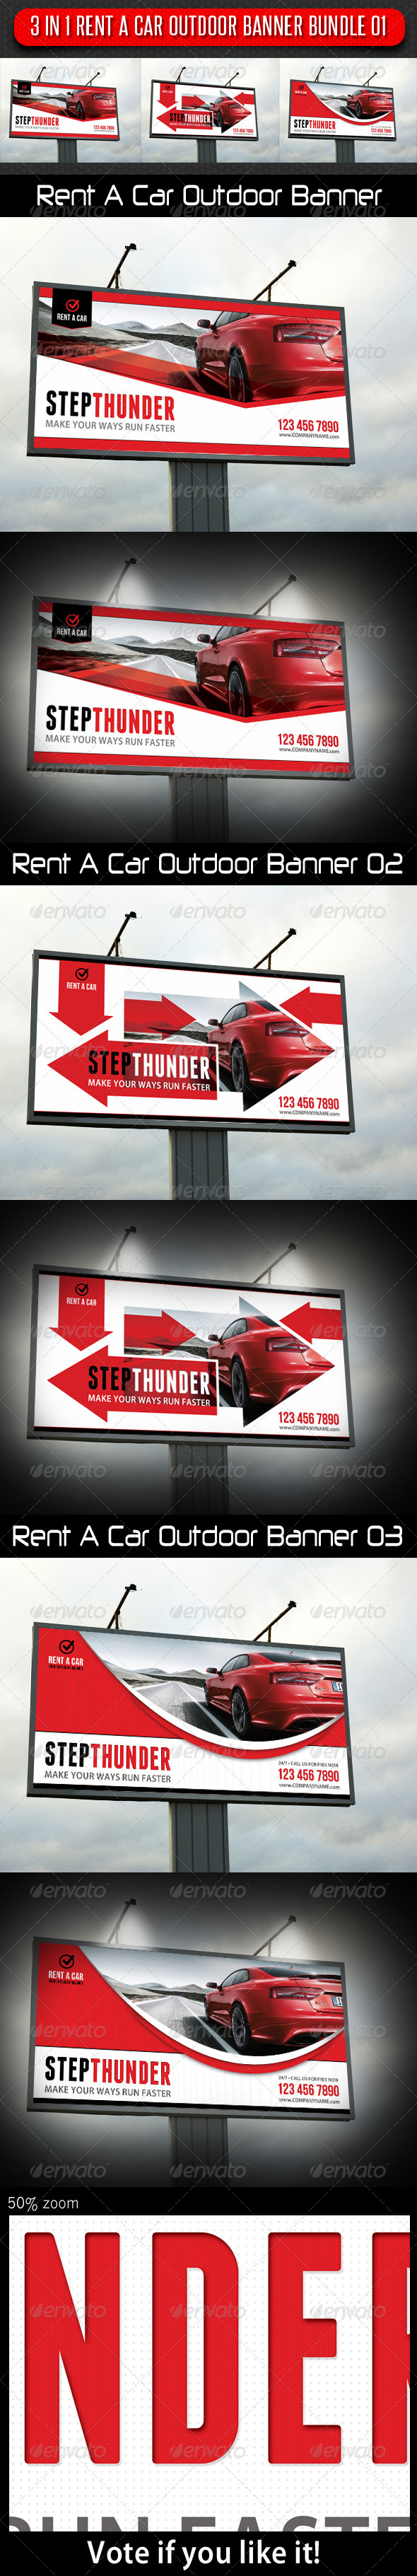 GraphicRiver 3 in 1 Rent A Car Outdoor Banner Bundle 01 5936117